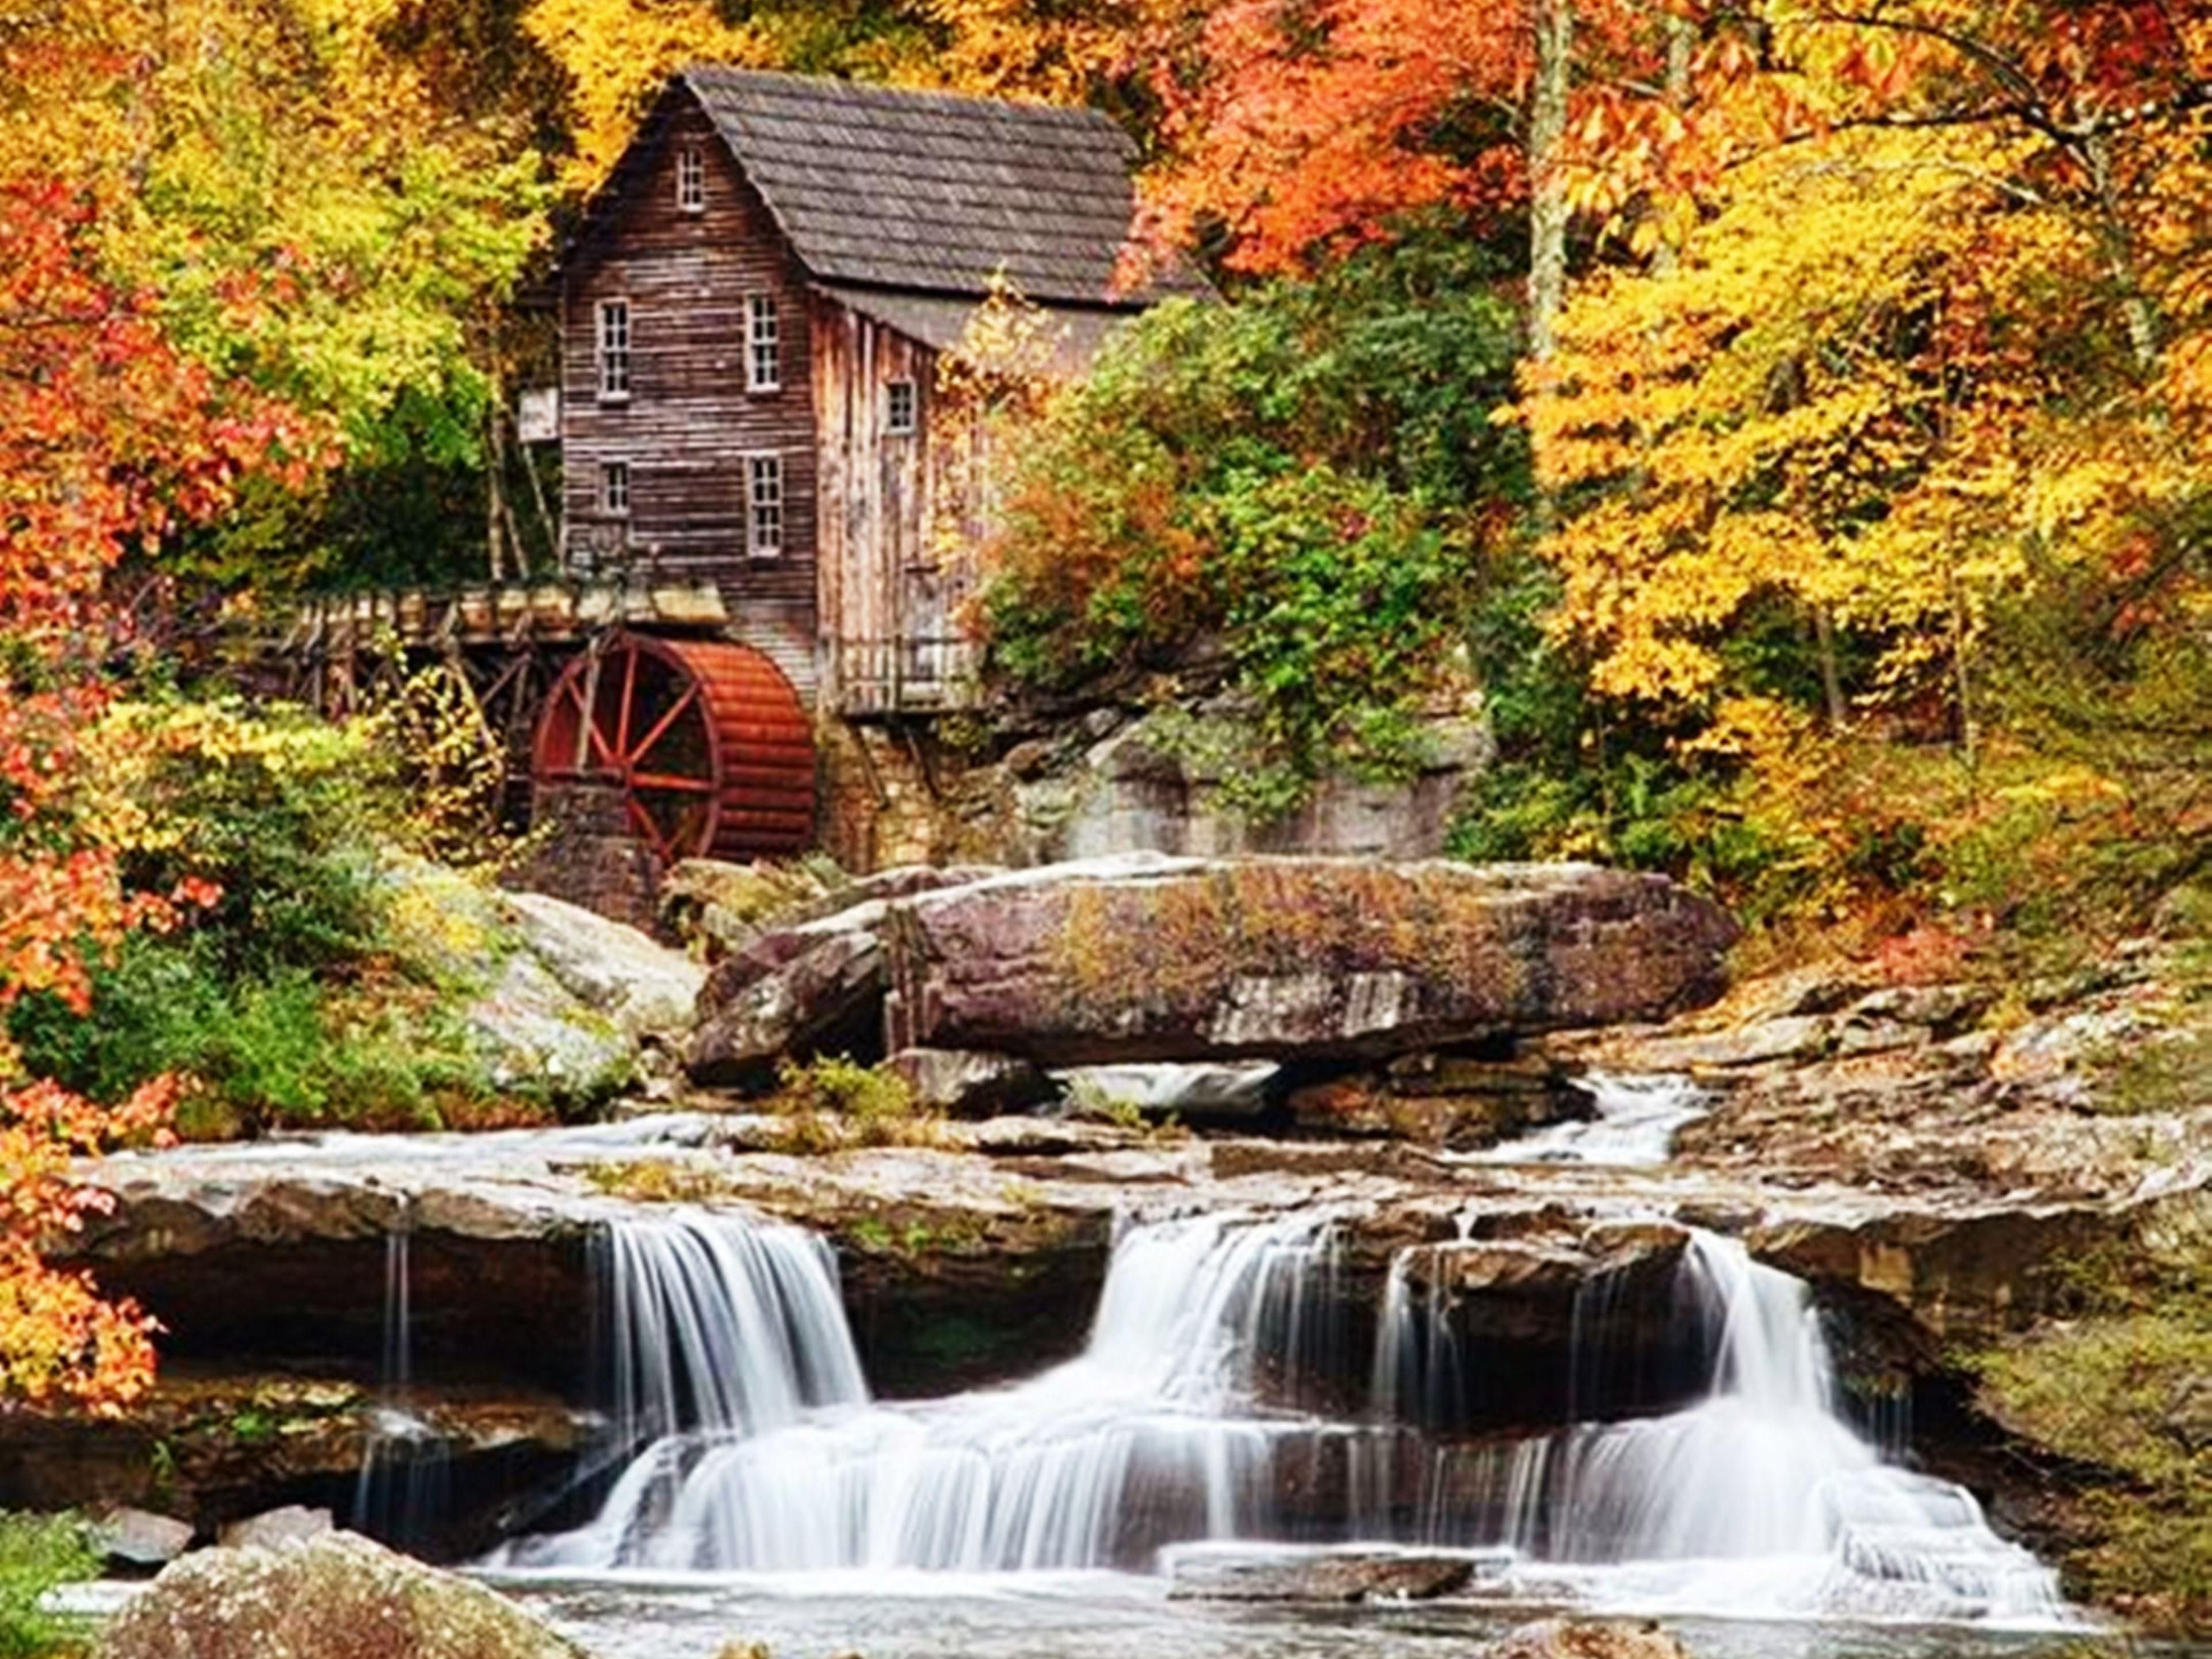 The Gristmill at Babcock State Park